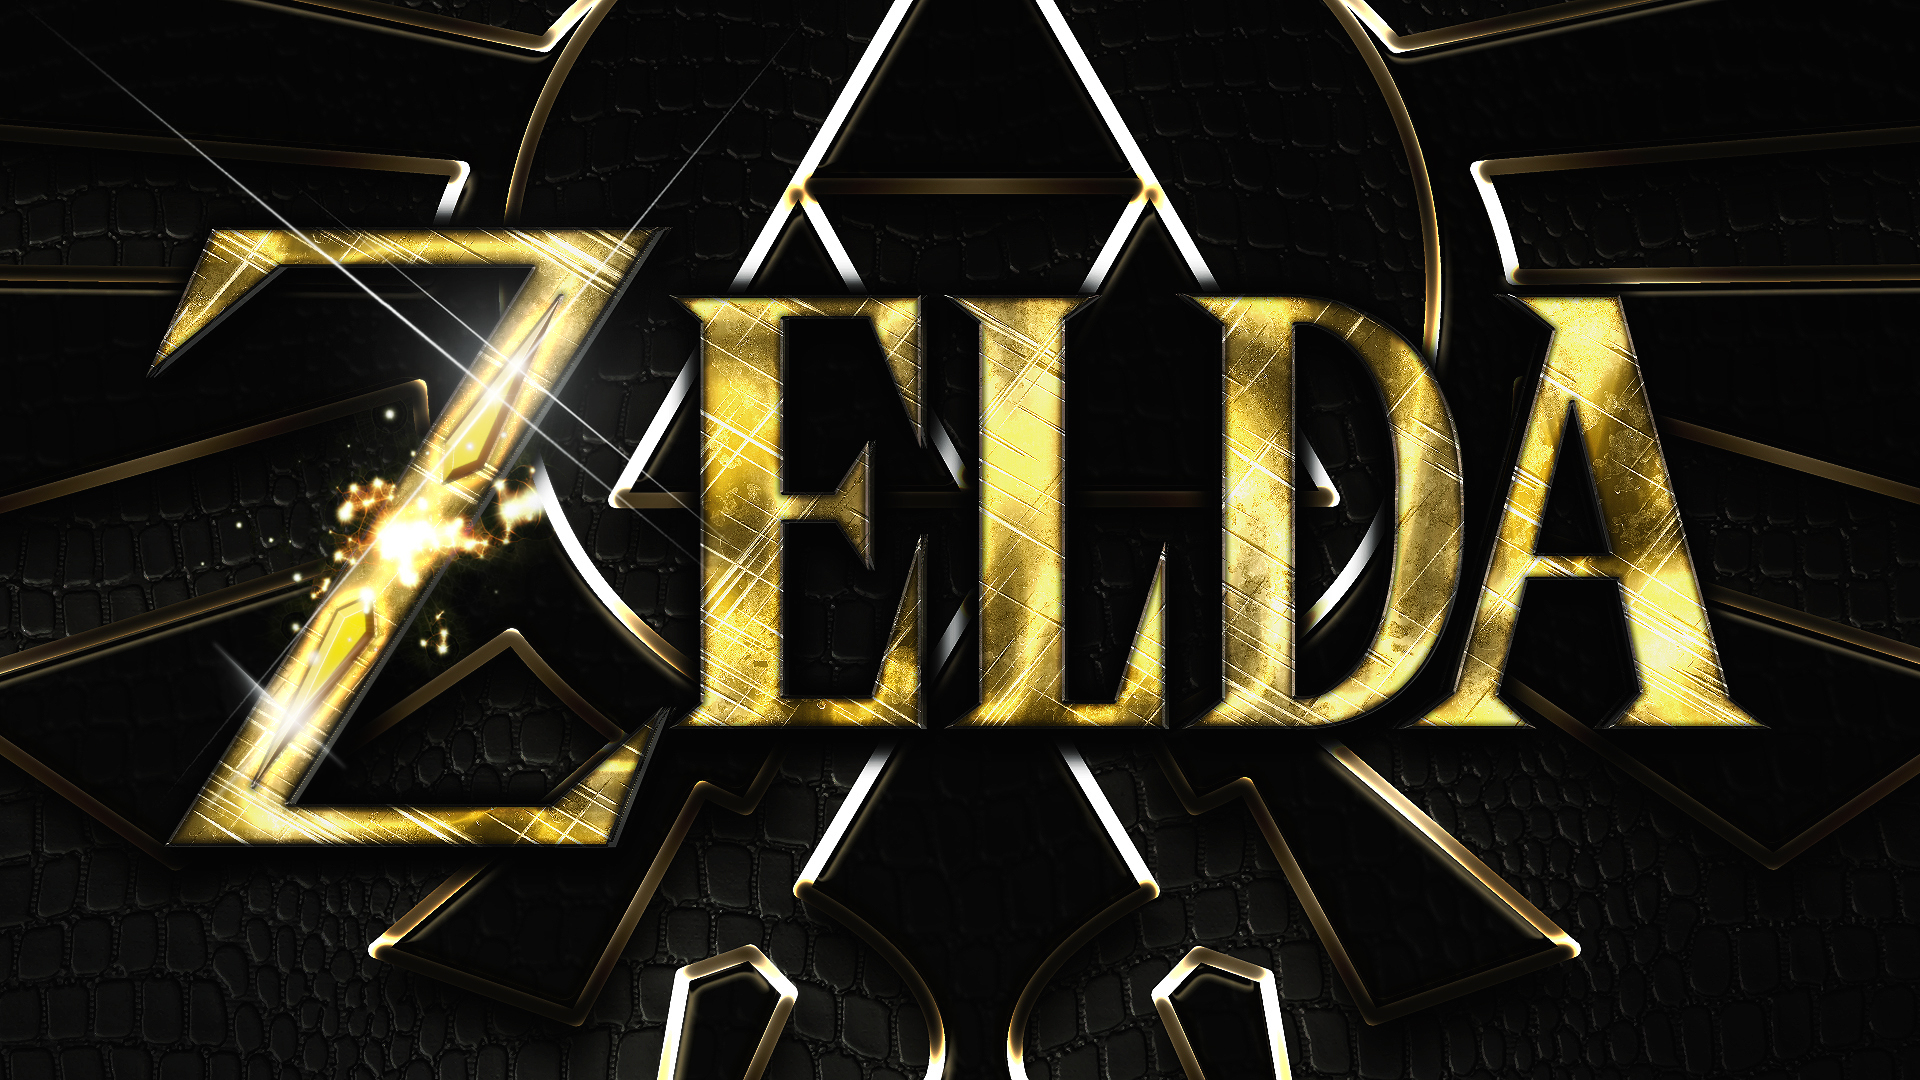 zelda typo Full HD Wallpaper and Background Image